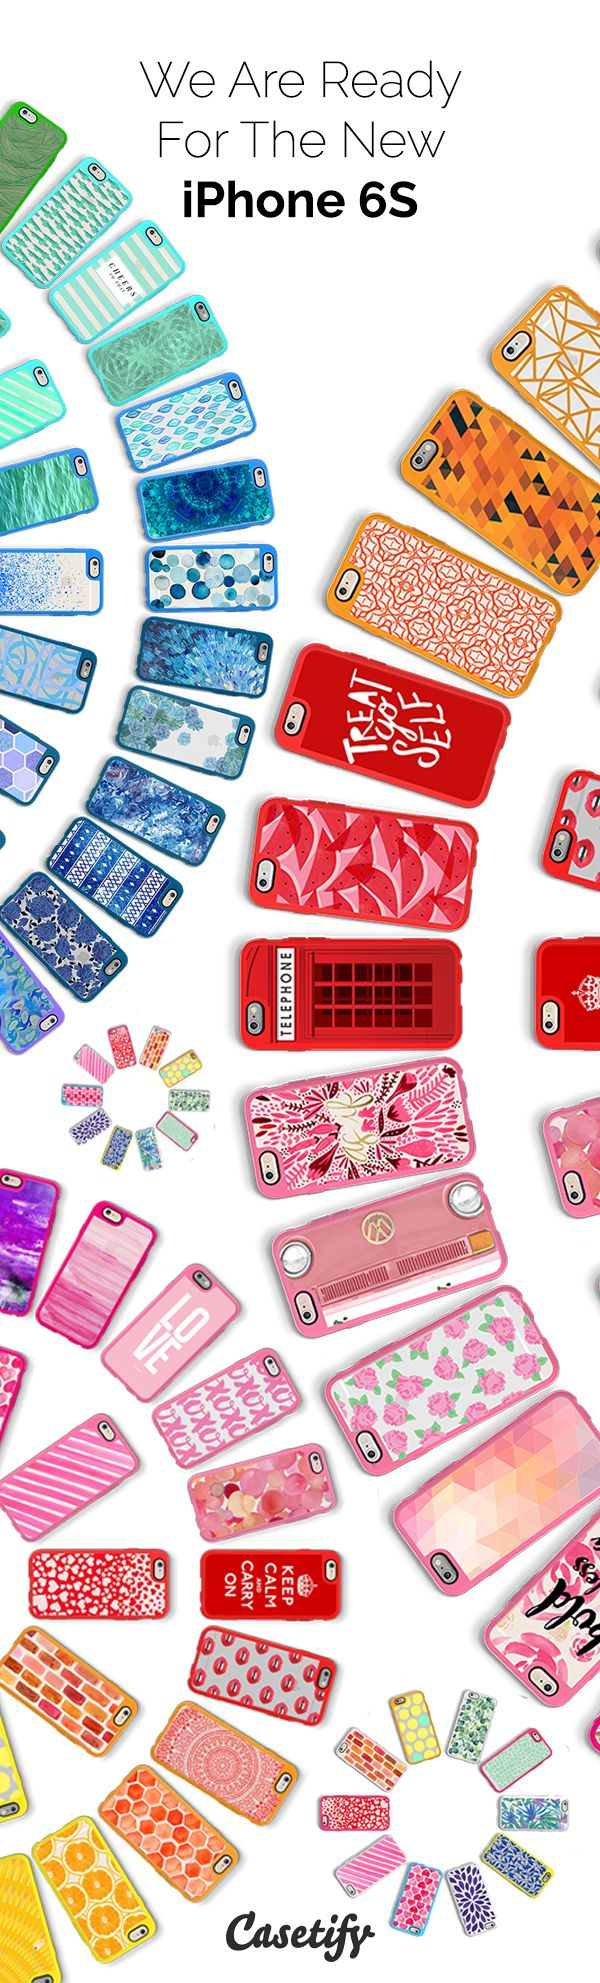 Setting a New Standard of phone cases where design meets protection. Now you can have the best of both worlds. Build your own here: http://www.casetify.com/iphone6s